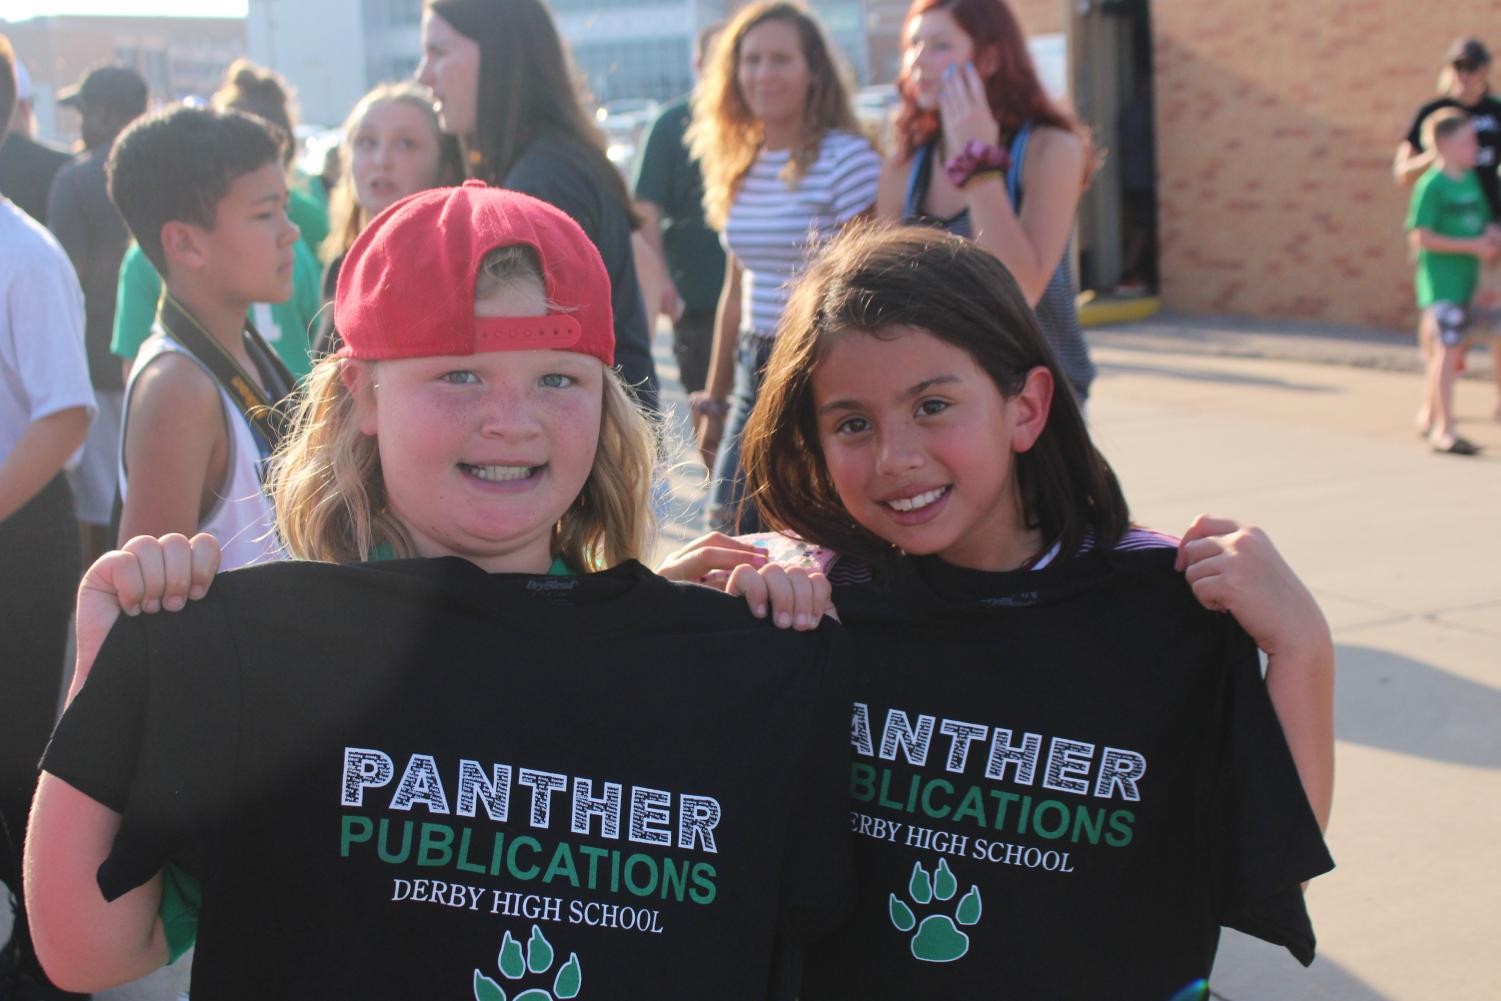 Future+Panthers+pose+for+a+photo+with+Derby+High+School+Journalism+t-shirts+from+2017.+